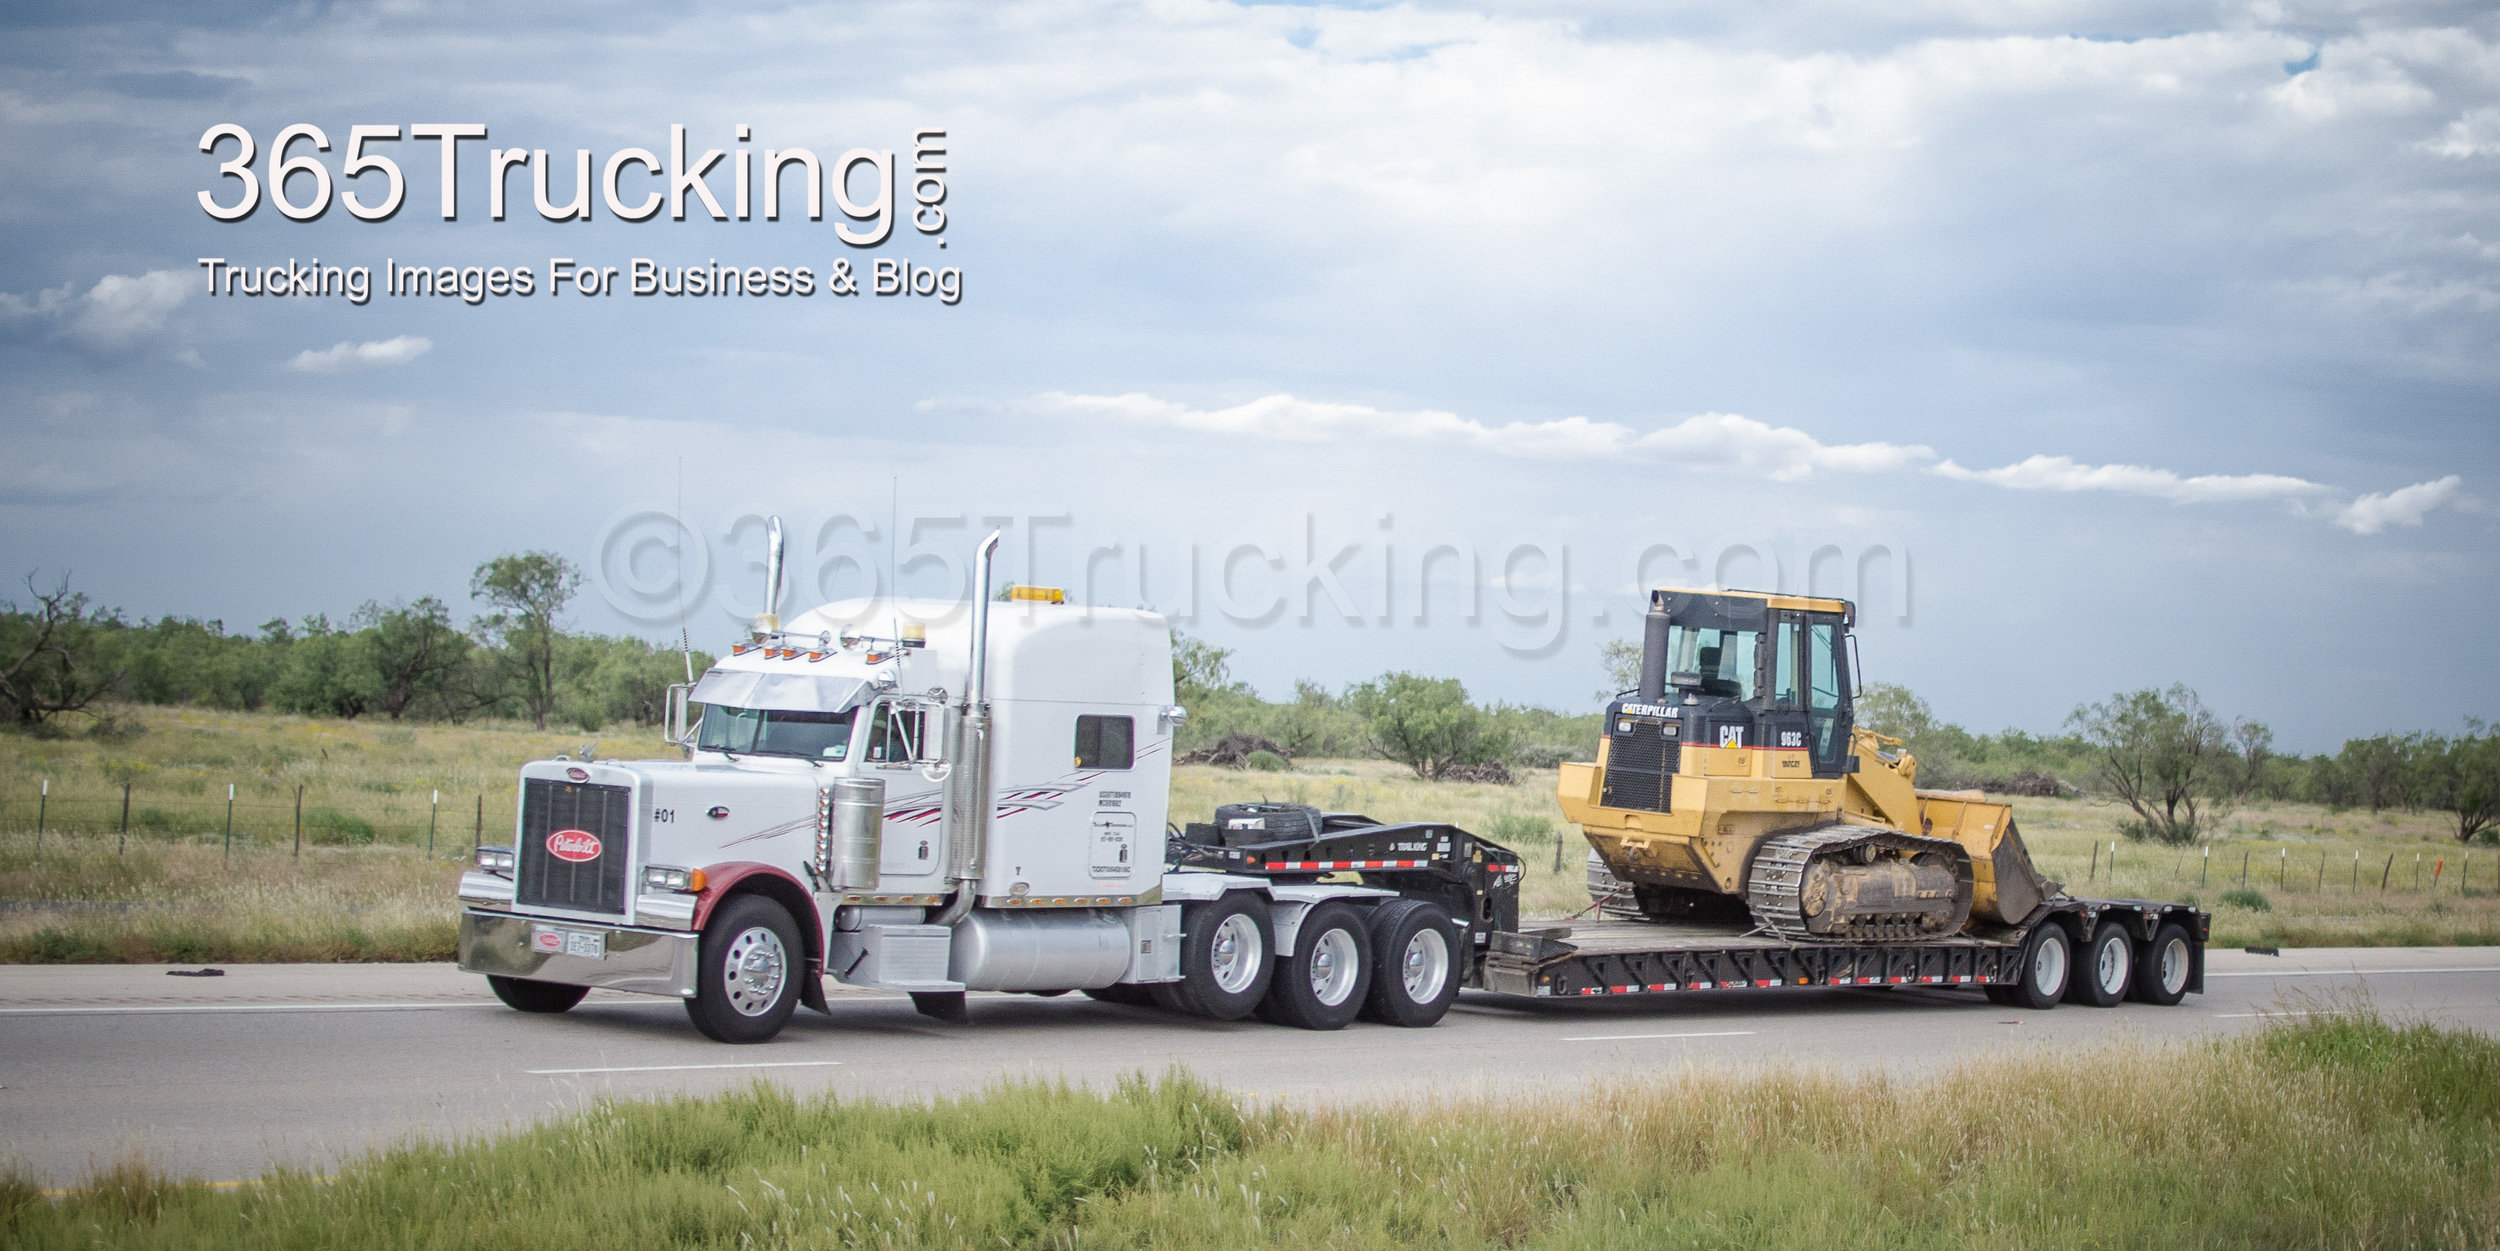 Click  HERE  to see more from TruckStockImages.com